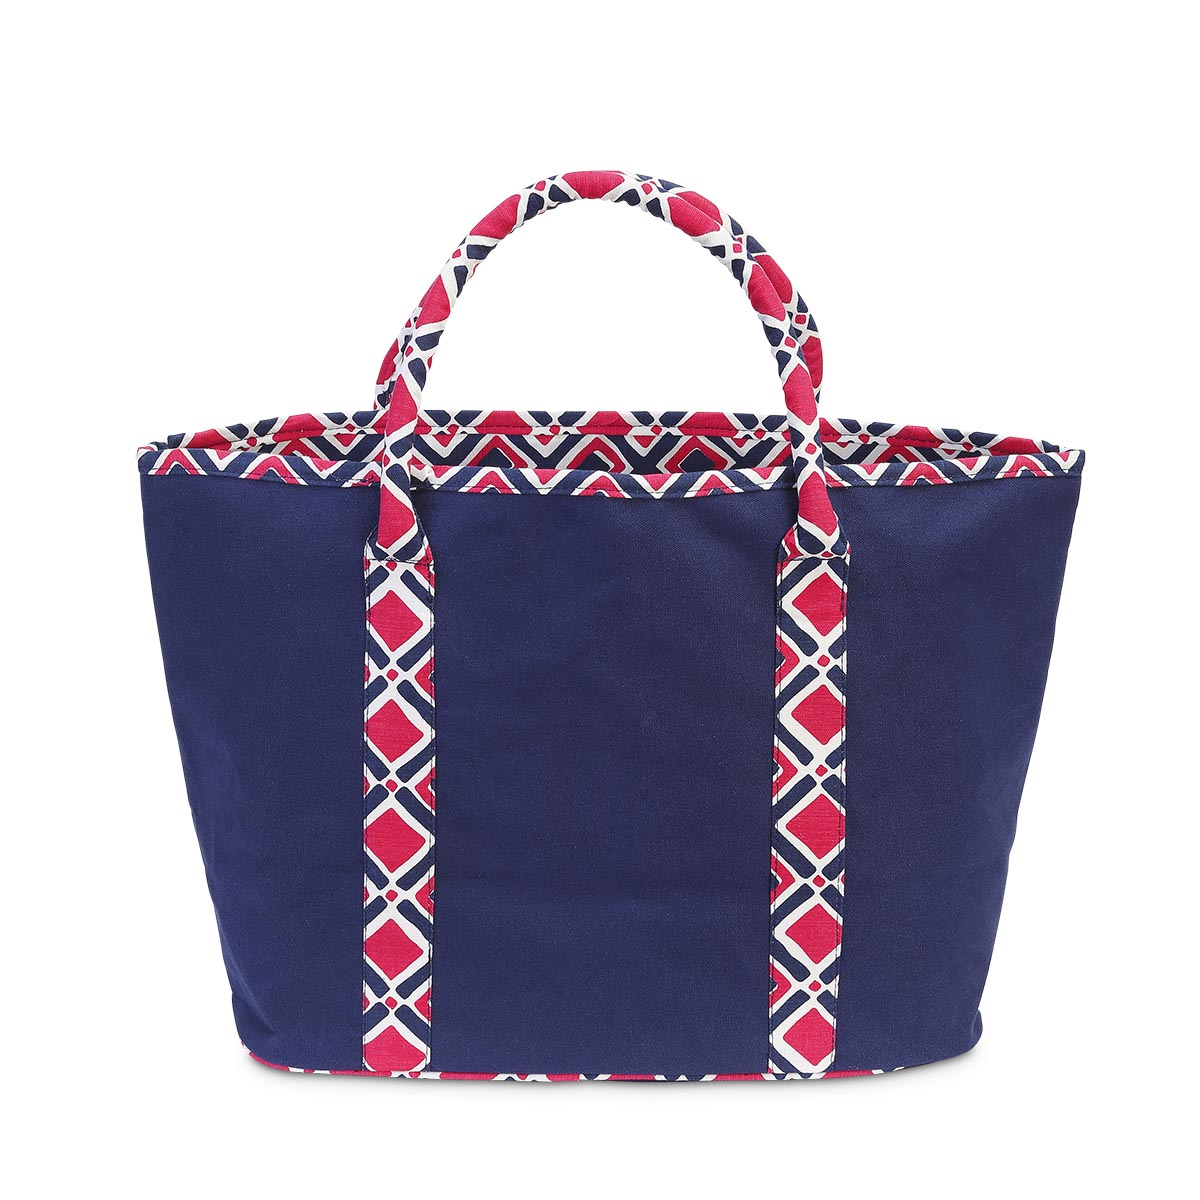 times square navy/pink traveler tote